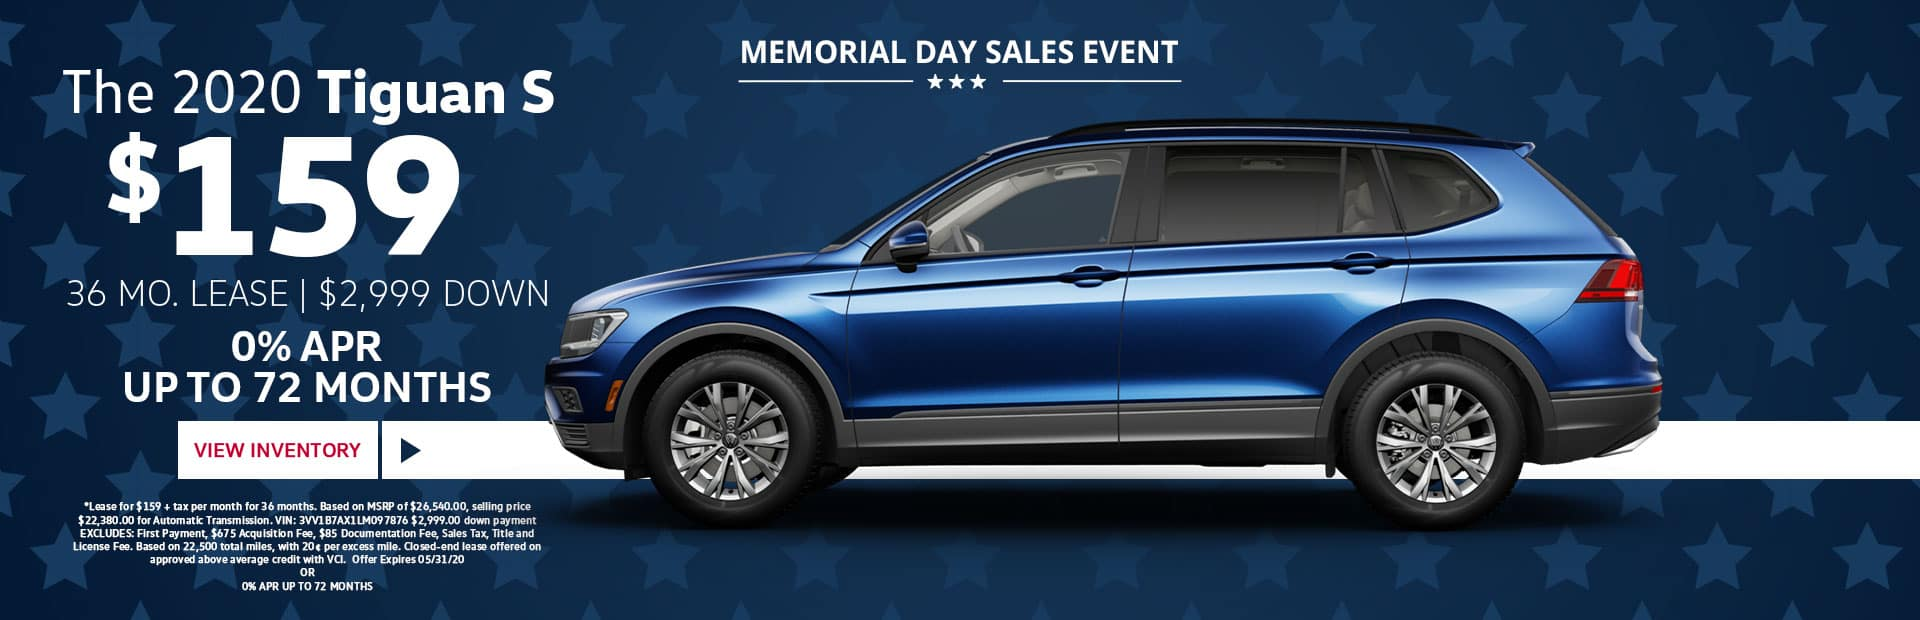 2020 tiguan lease special memorial day sale